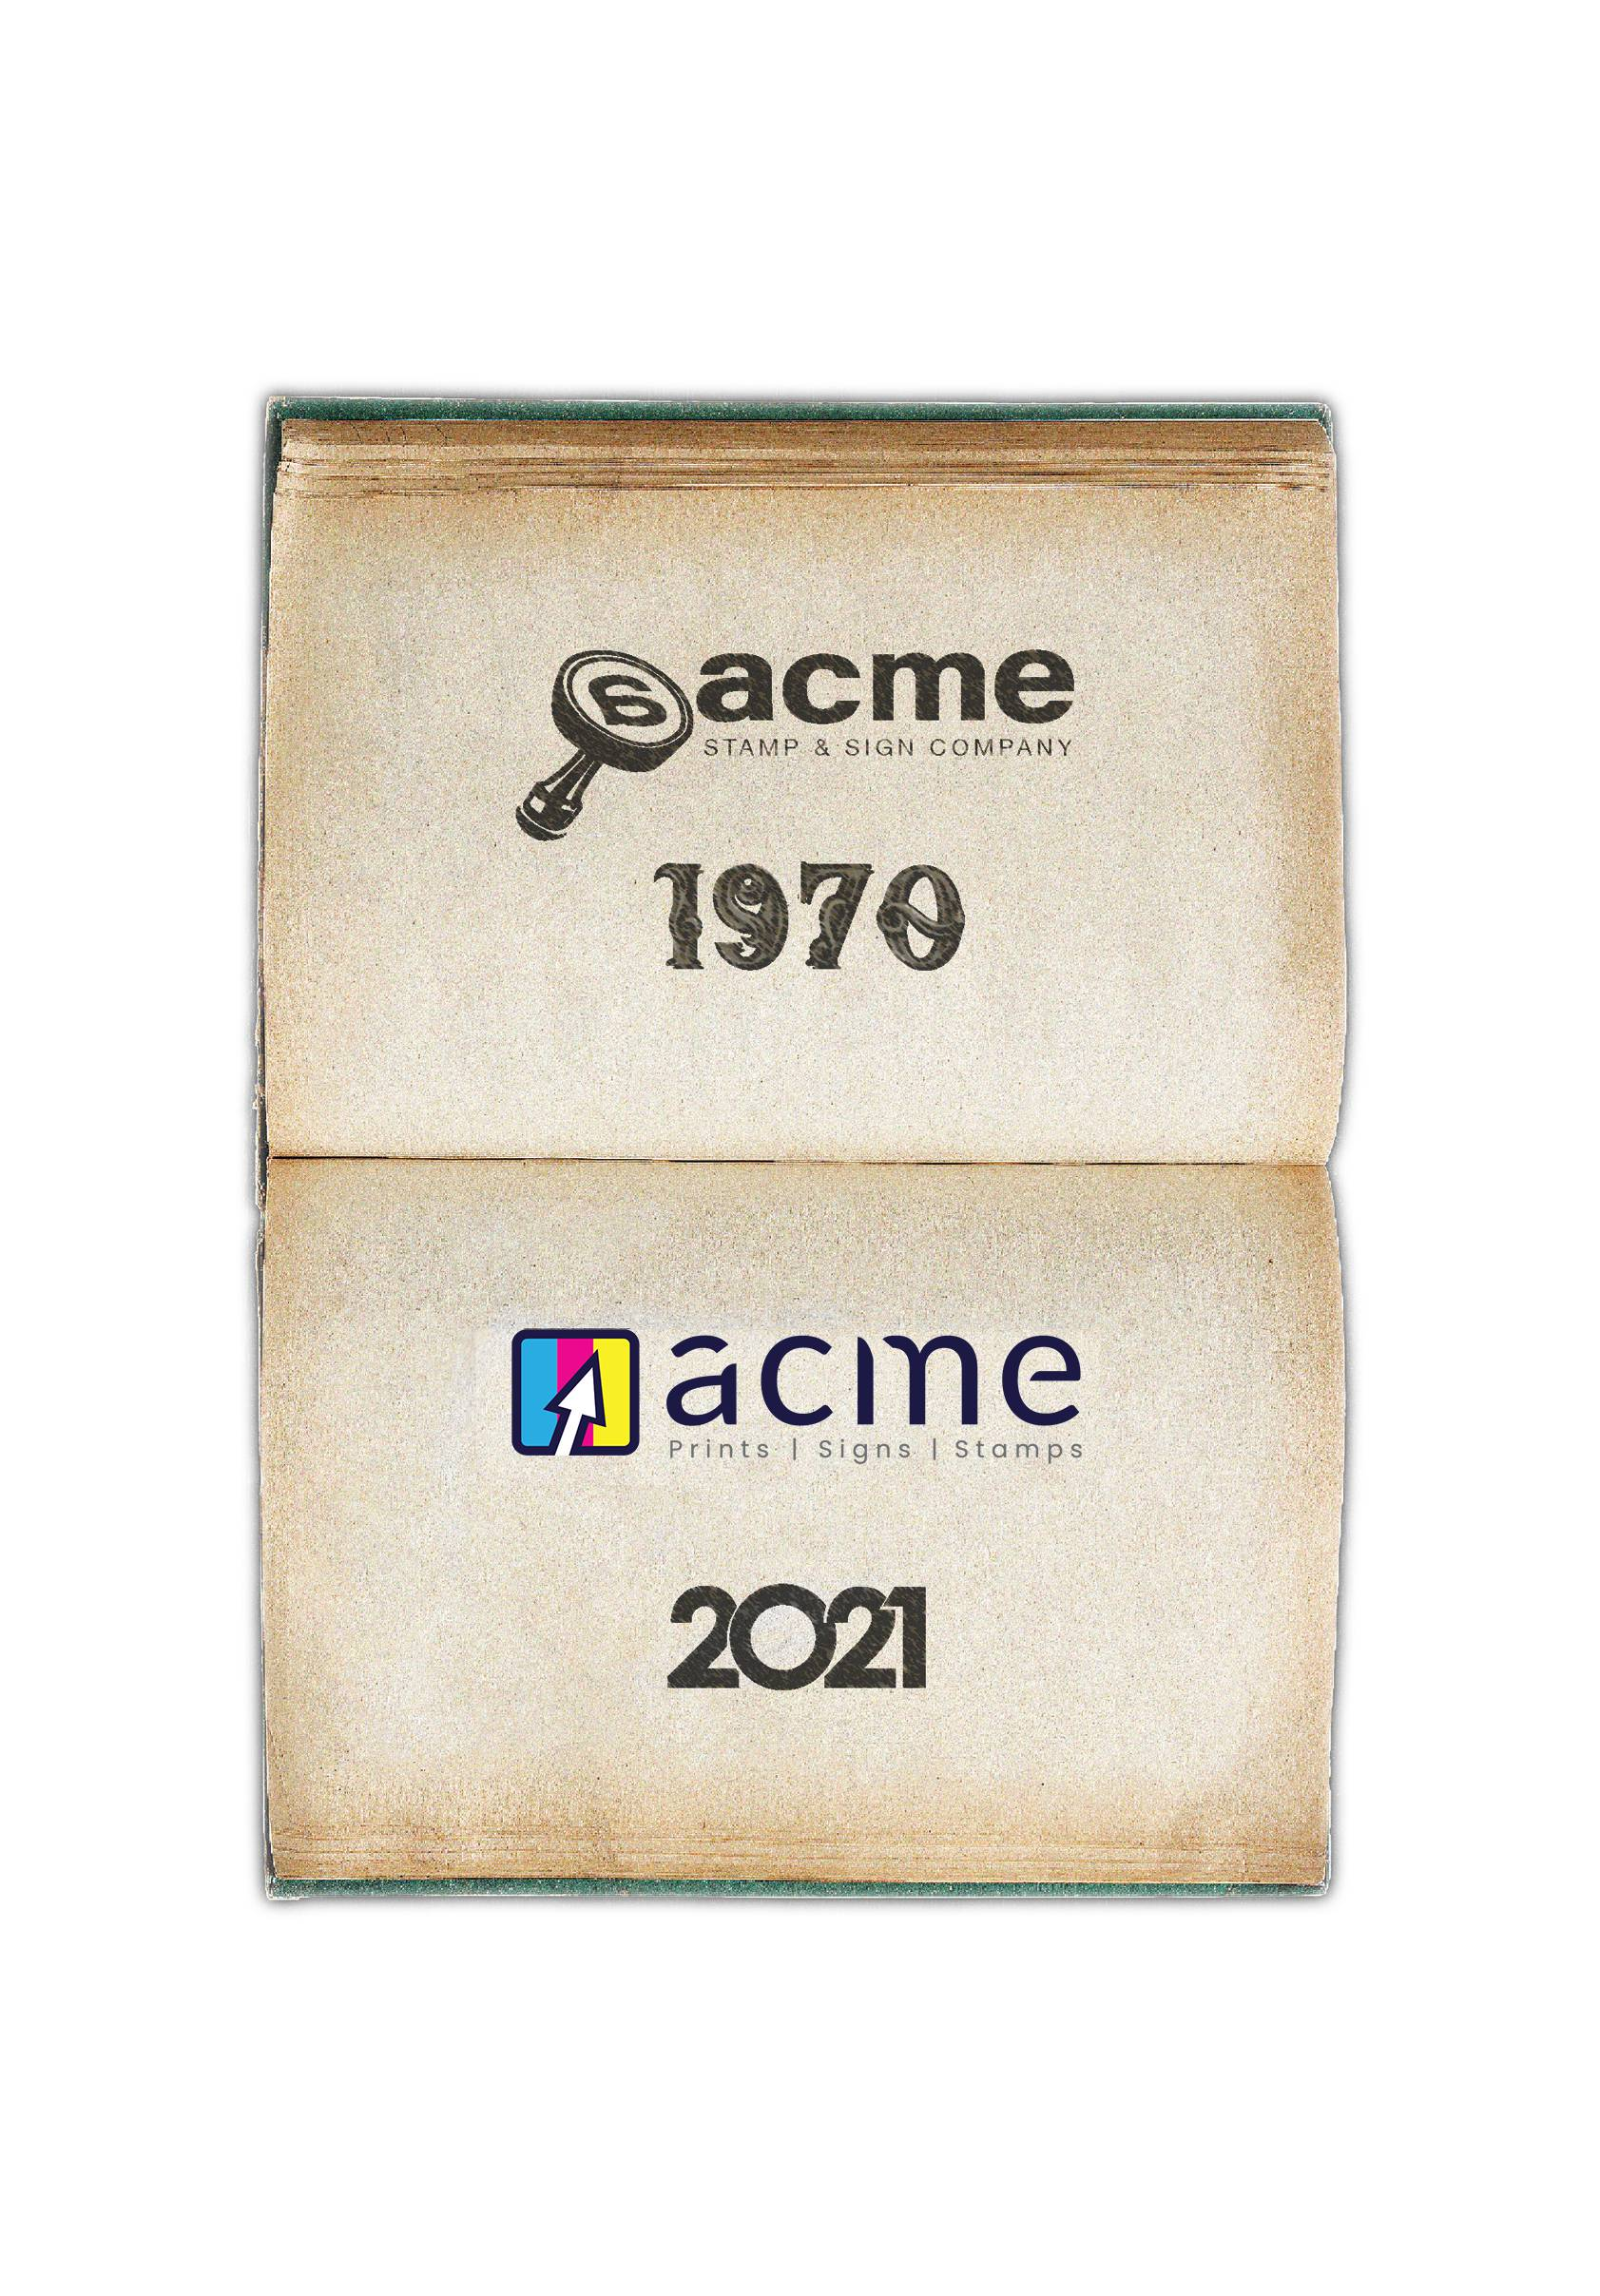 History of Acme Stamps from 1970 to 2021 - orlando - best printing company